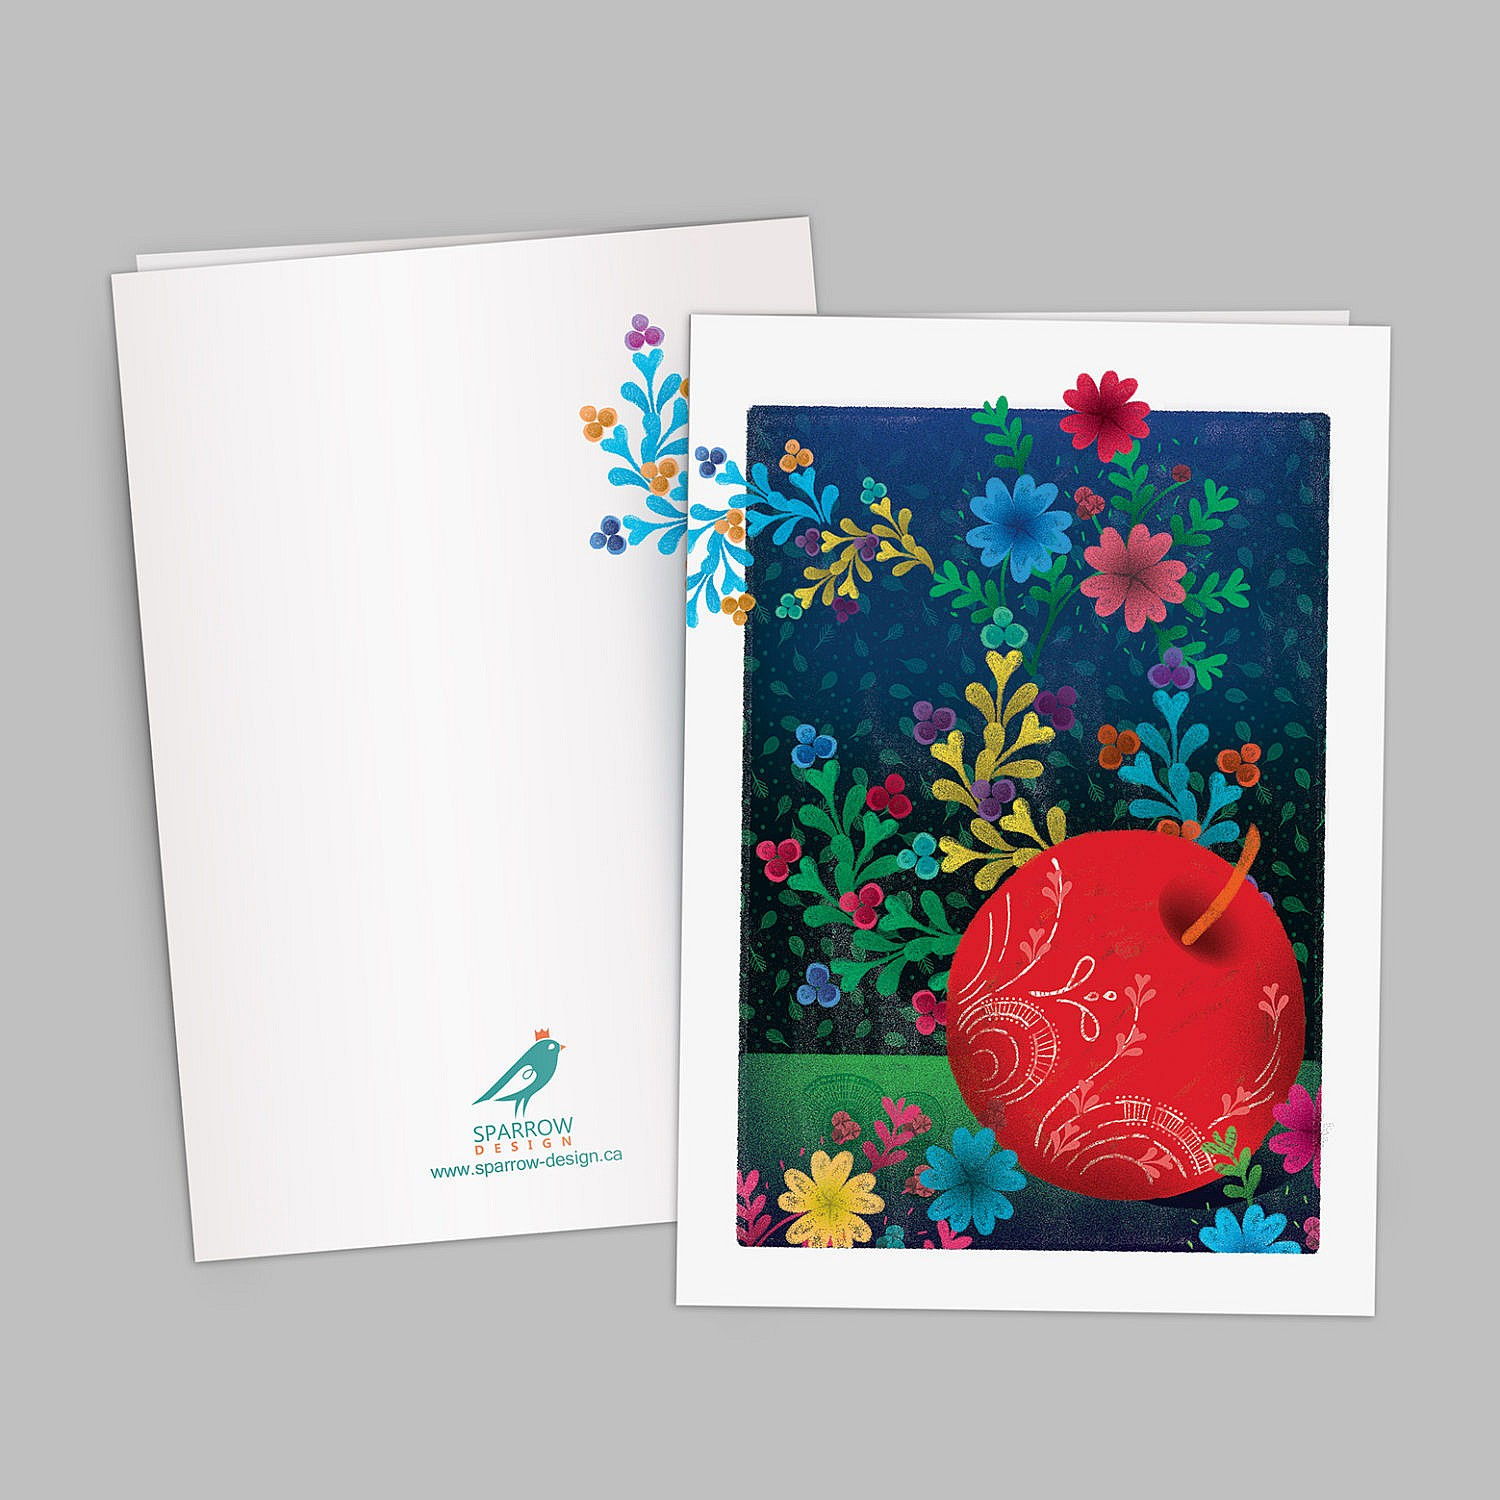 The image include an illustrated greeting card which is designed to celebrate Spring. The image shows two beautiful painted eggs one is showing a red apple which is decorated with tiny flowers. In the background there are colorful flowers. The background is blue and green.